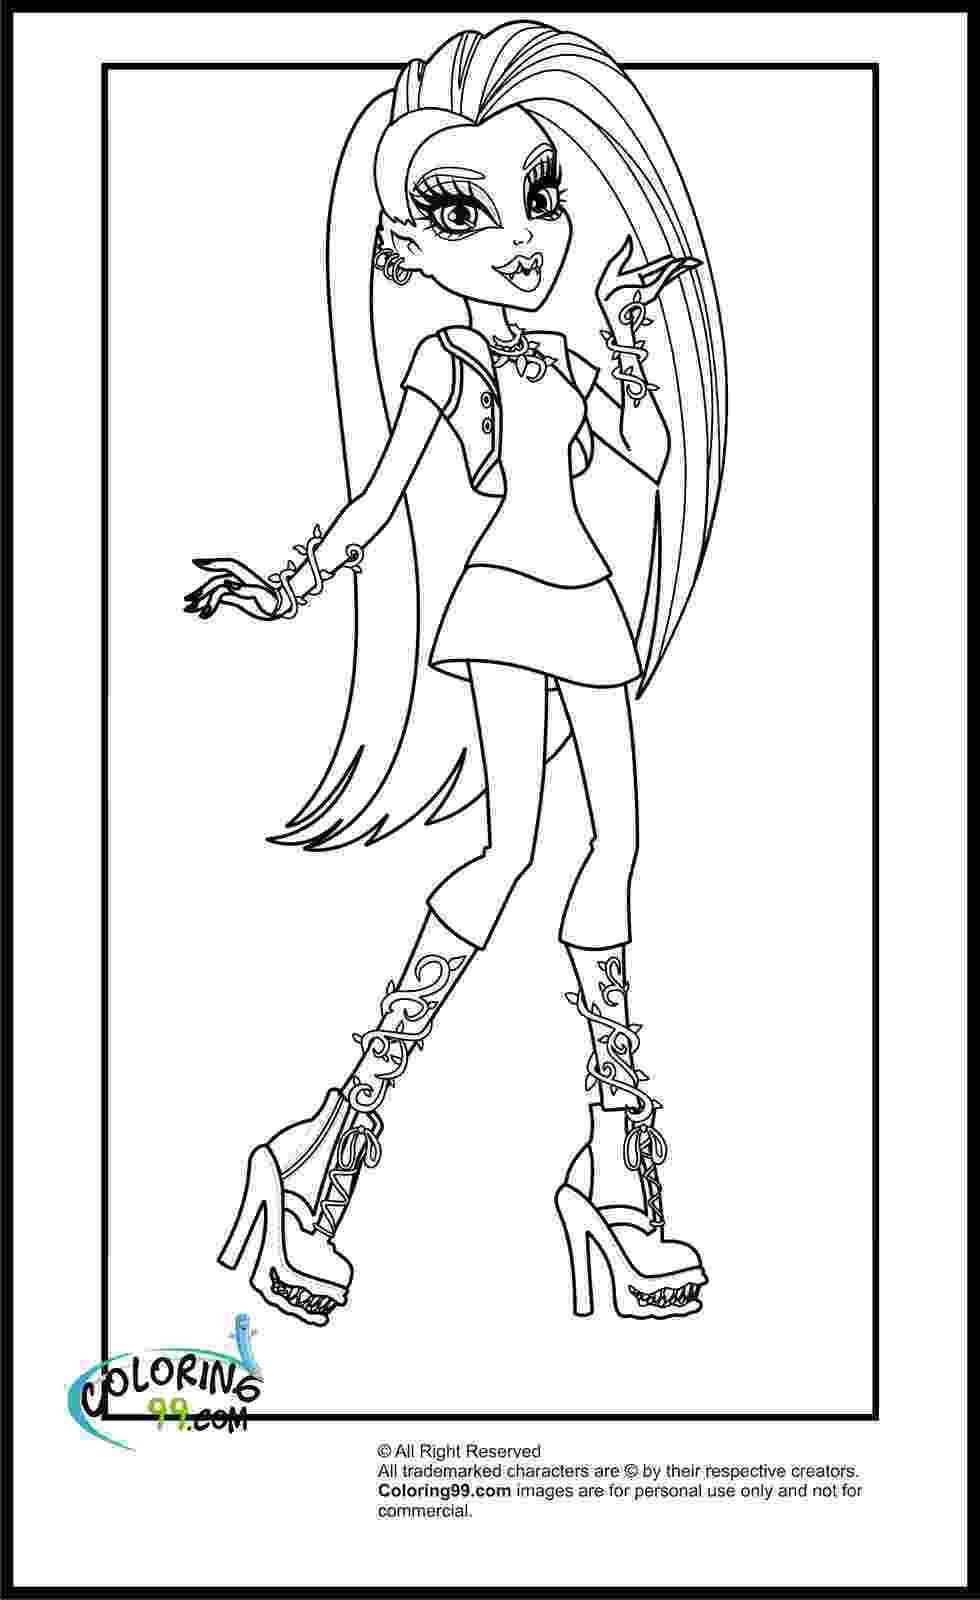 monster high coloring page coloring pages monster high page 2 printable coloring monster coloring high page